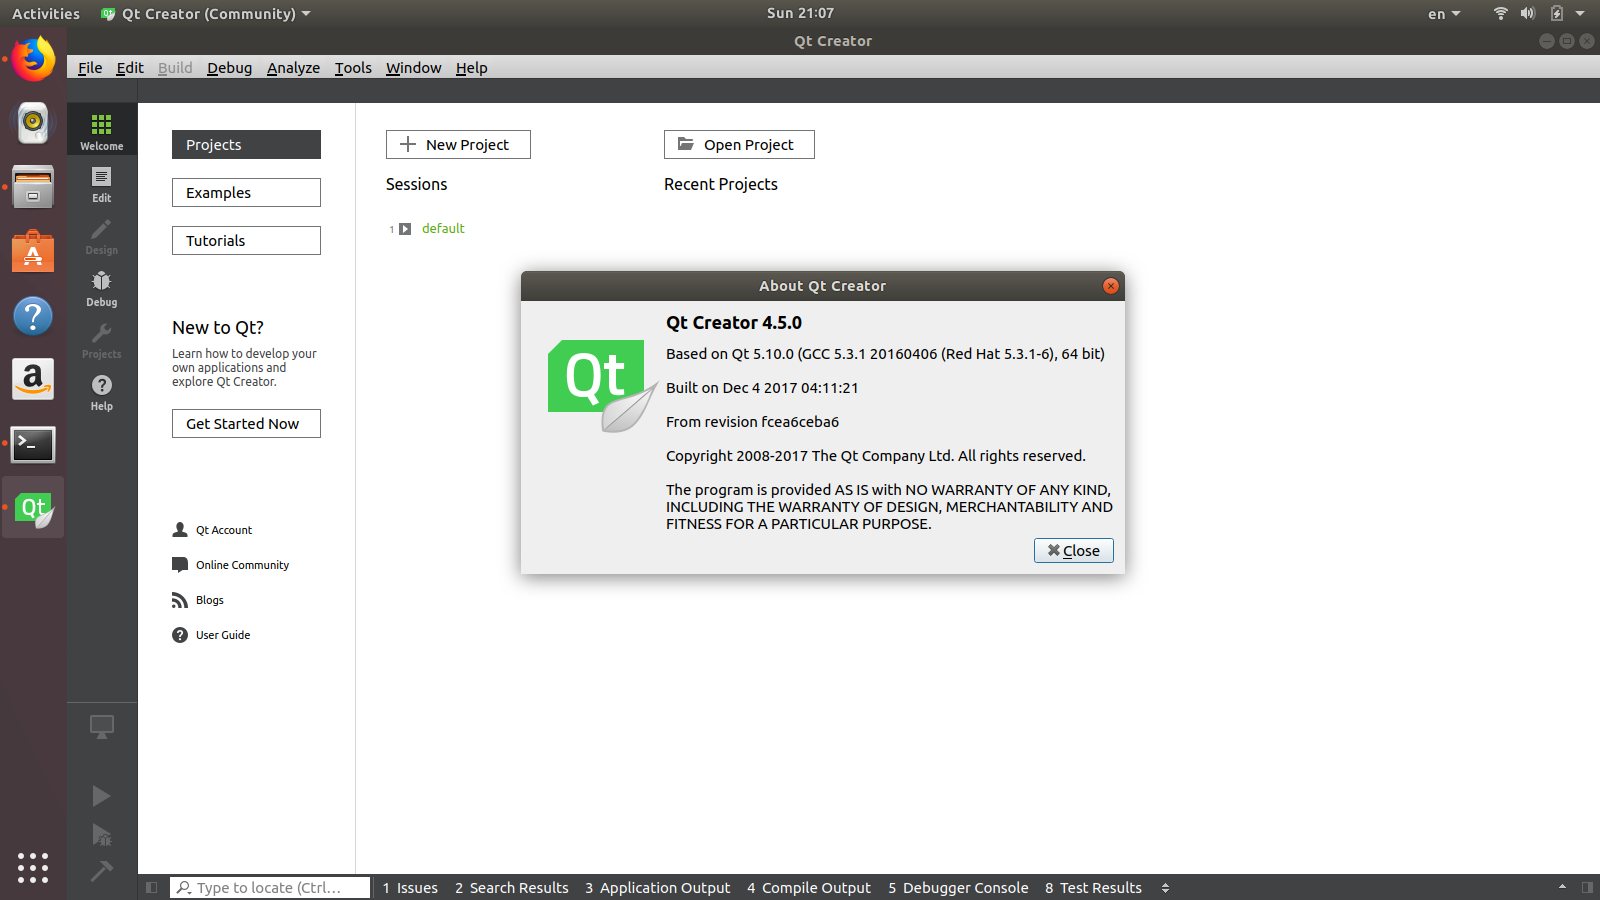 How to install program on Ubuntu: How to install Qt 5 10 0